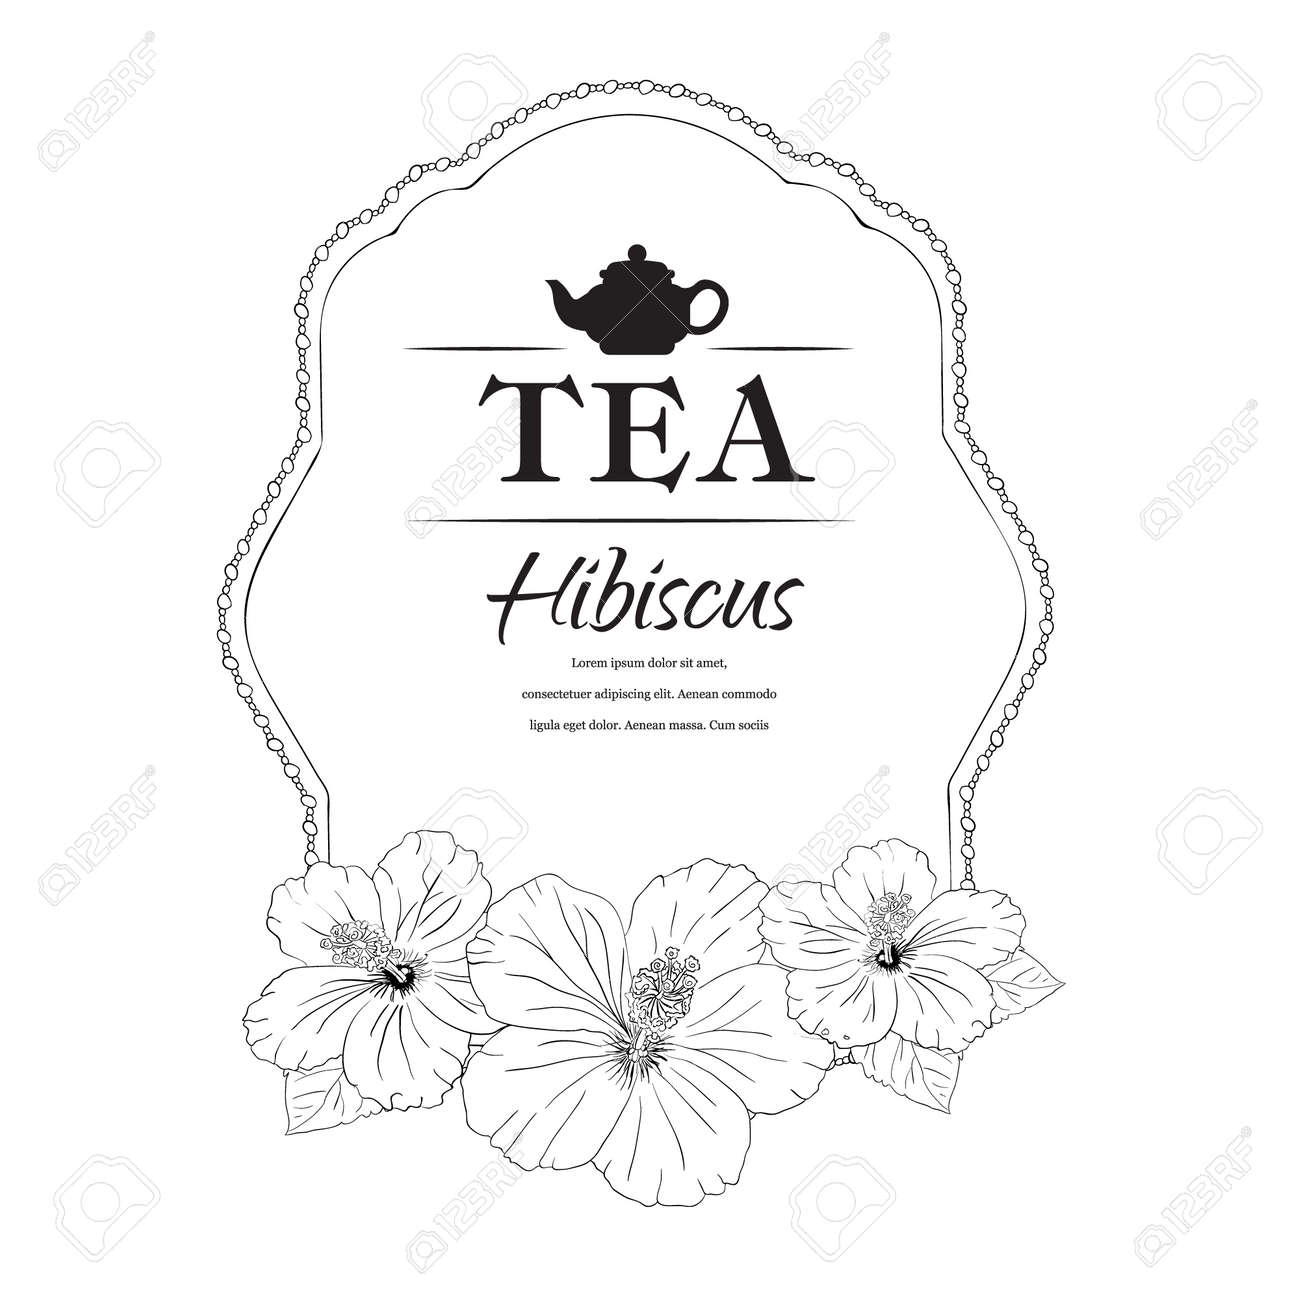 Tea Label Template Kleo Bergdorfbib Co